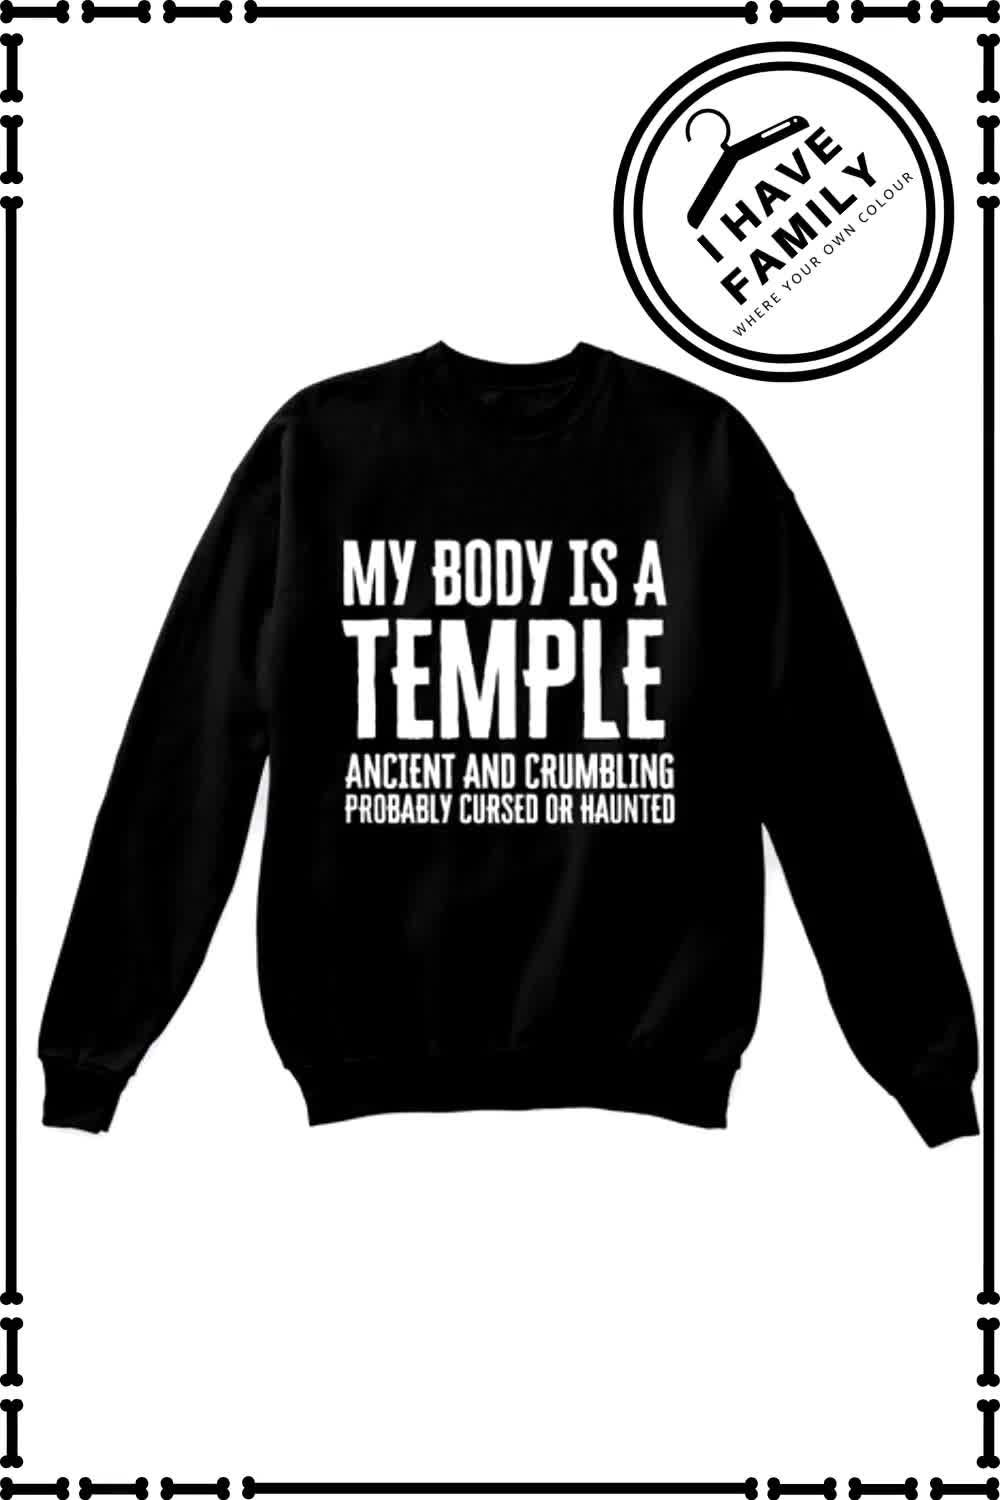 MY BODY IS A TEMPLE - FUNNY SWEATSHIRT FOR YOUR LOVED ONES